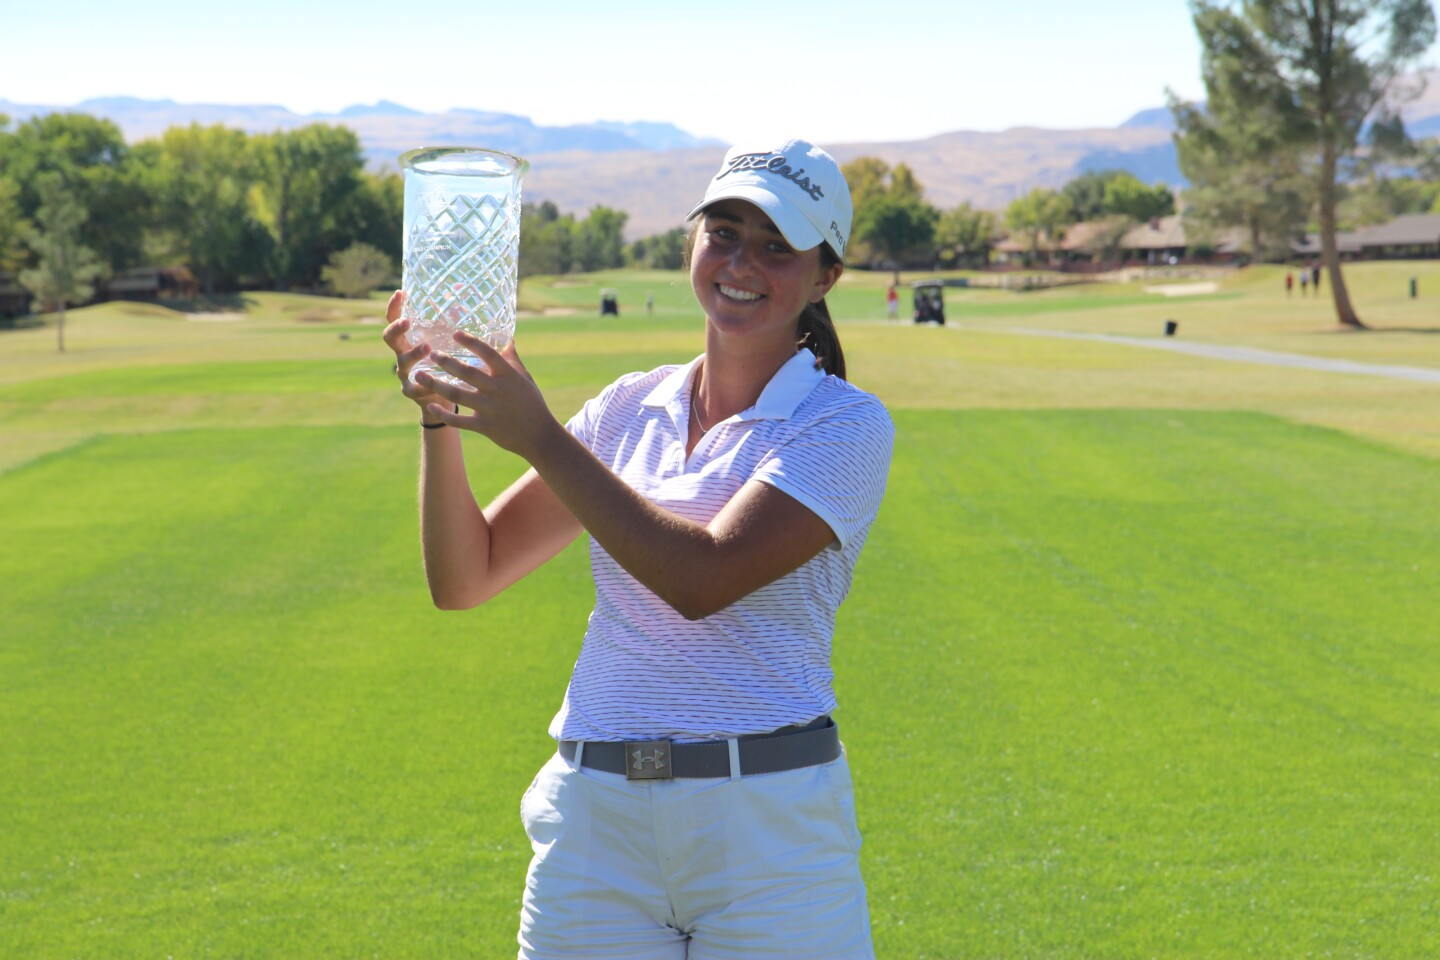 Crista Izuzquiza 2020 AJGA Junior Open presented by Greater Zion Convention and Tourism (13).JPG